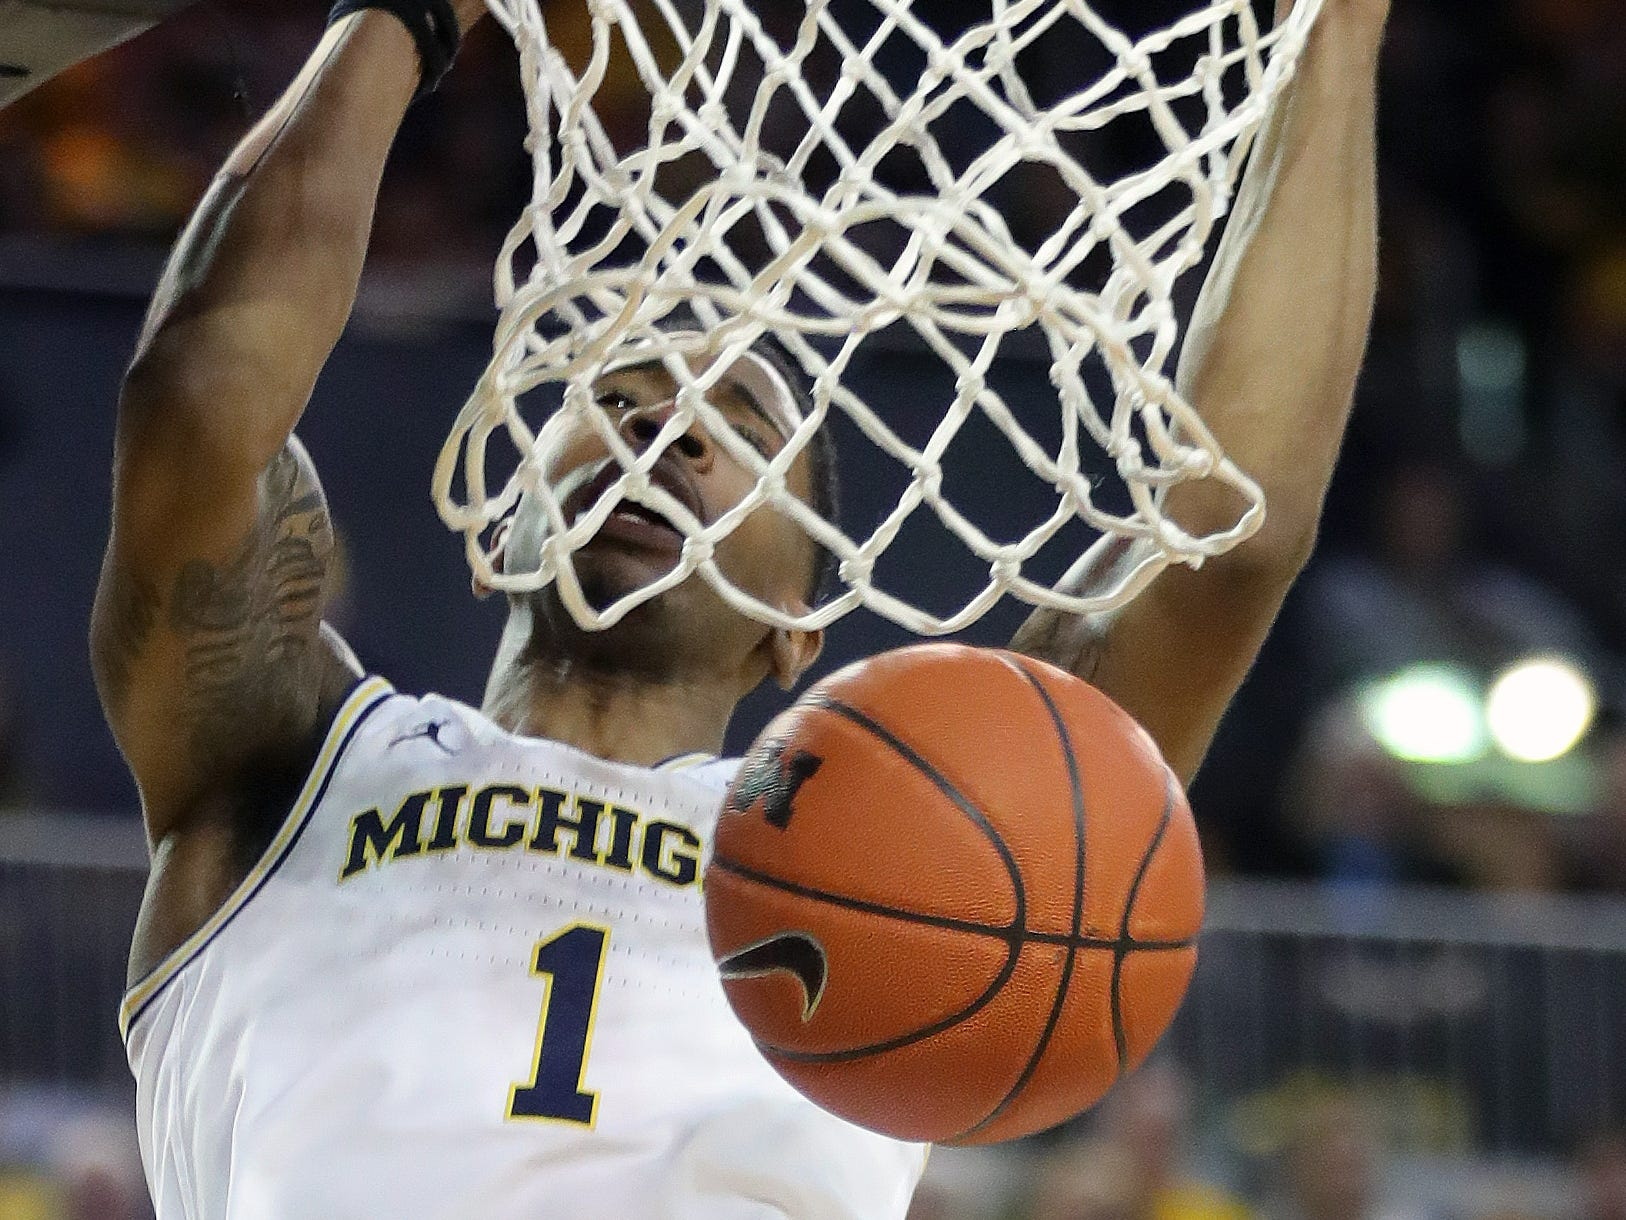 Michigan guard Charles Matthews scores against Wisconsin during the second half Saturday, Feb. 9, 2019 at Crisler Center.